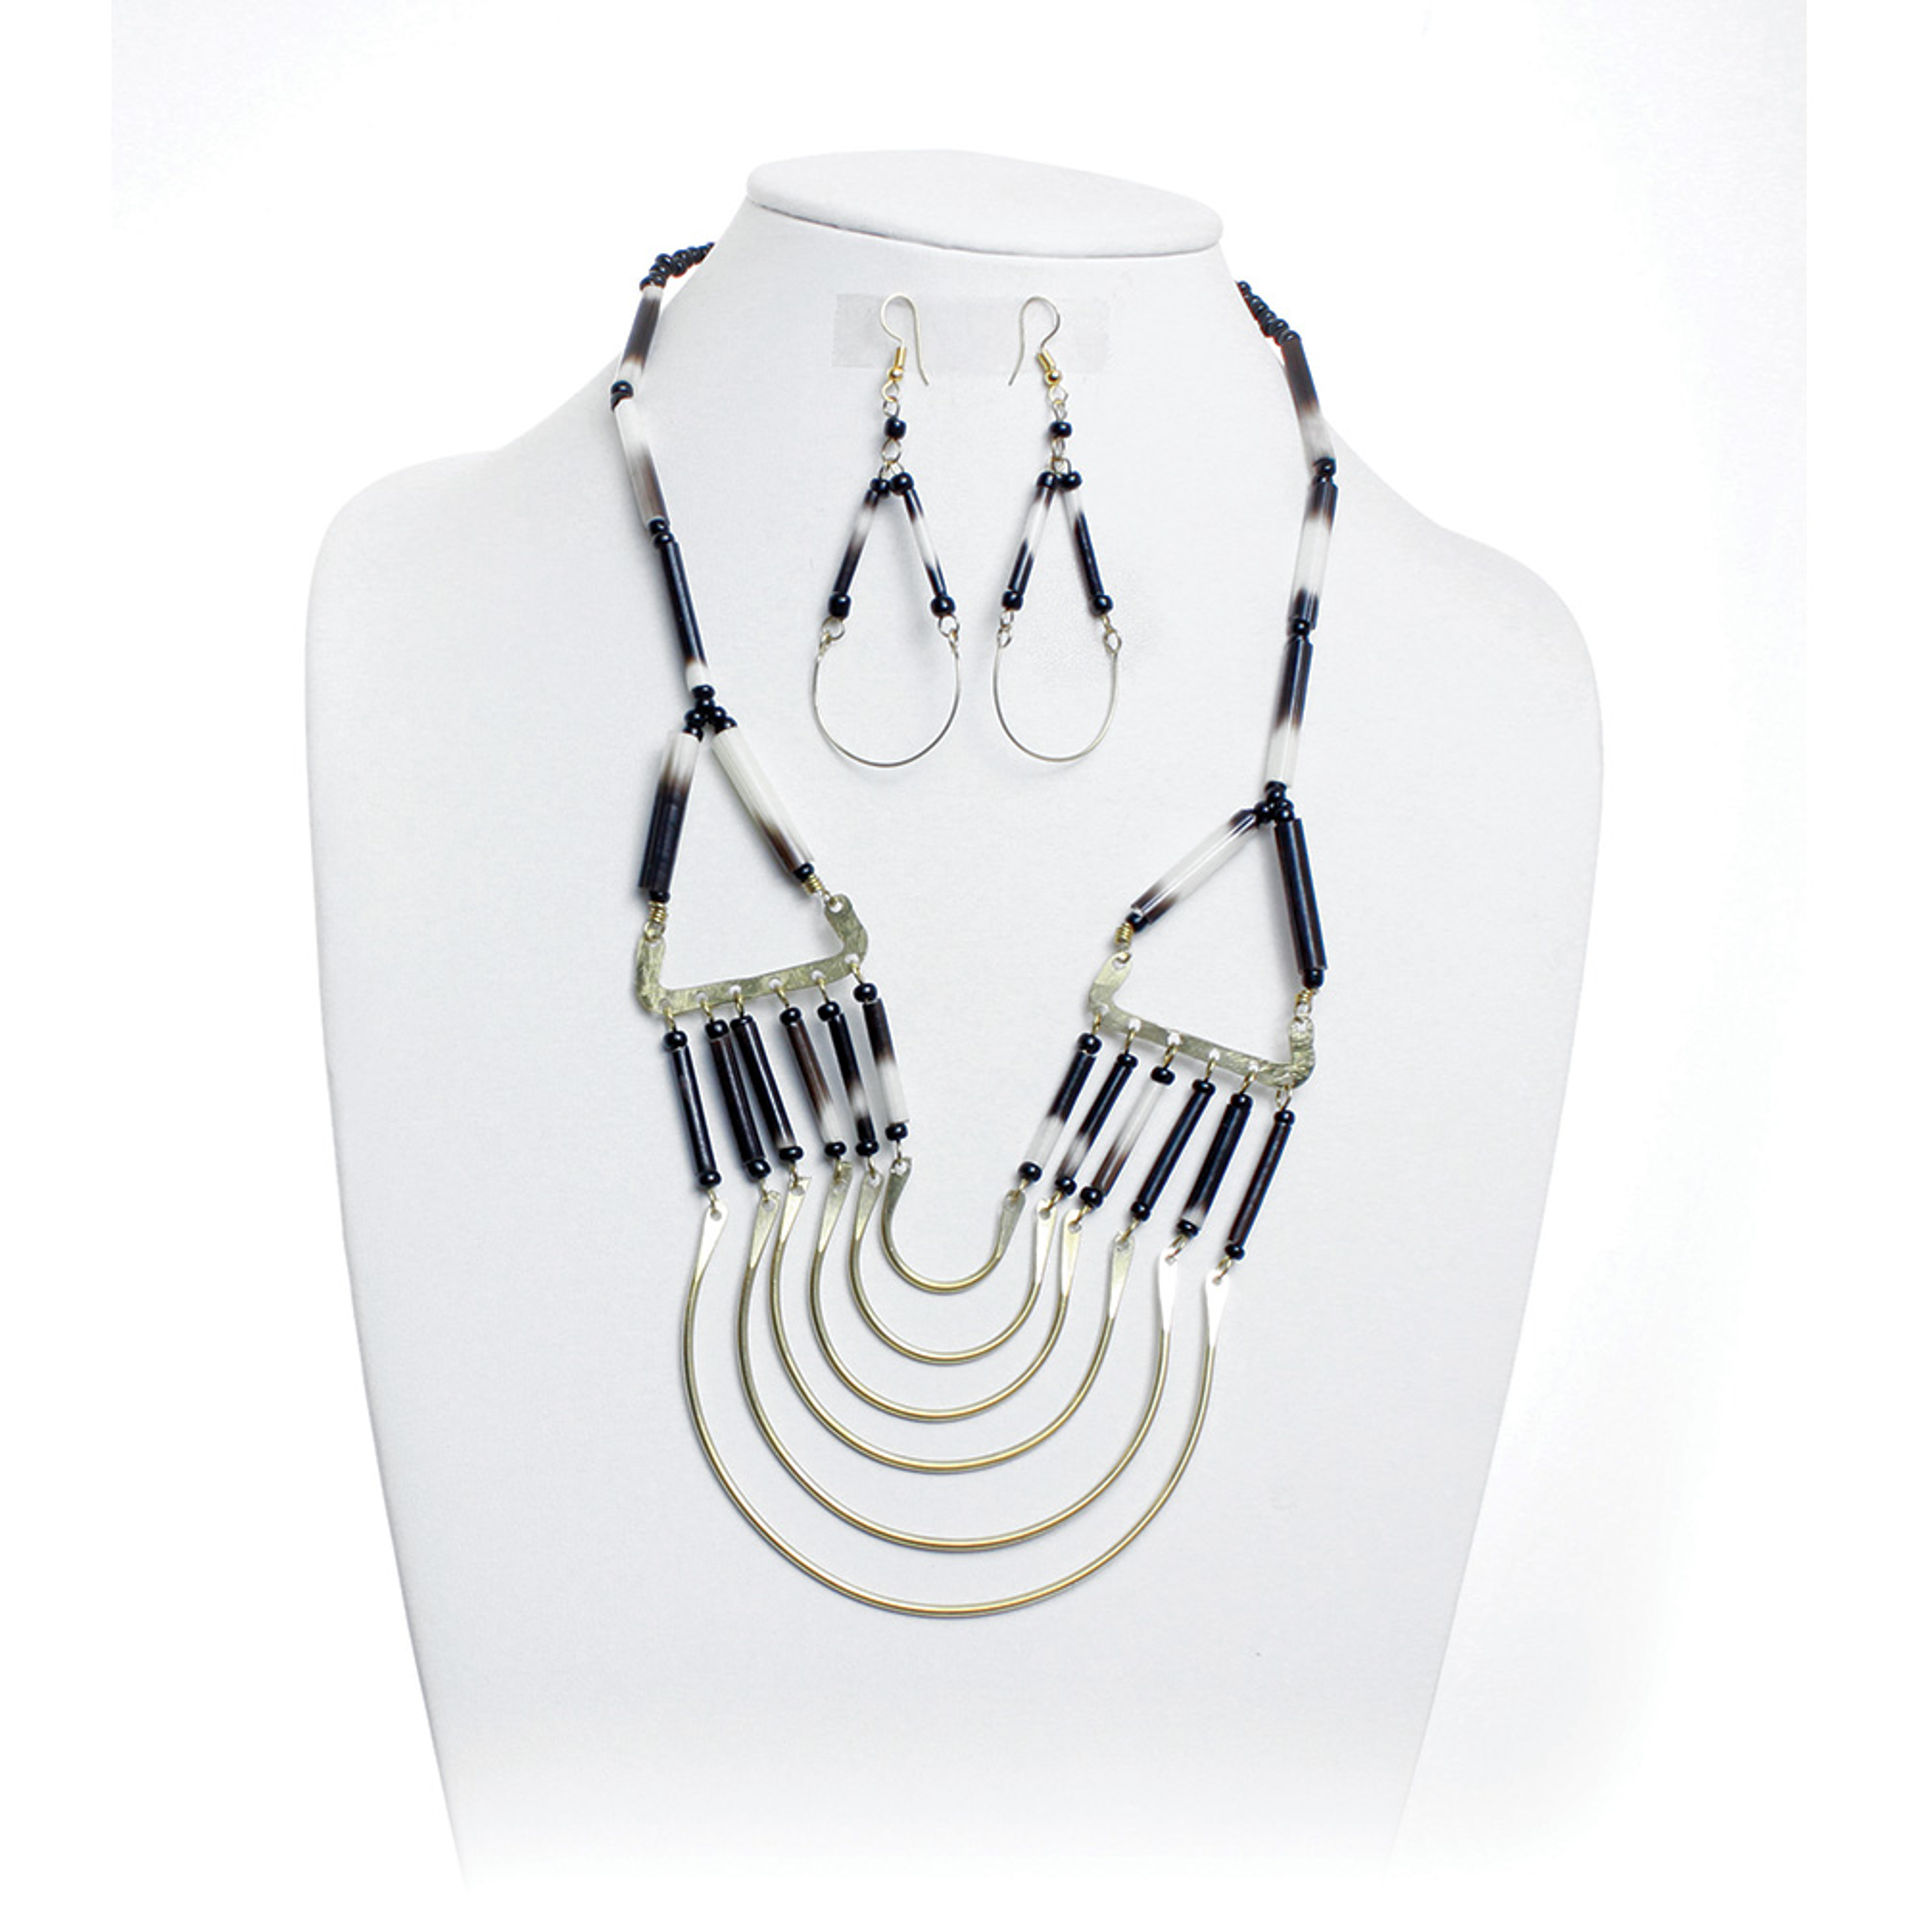 Picture of Porcupine Quill Necklace & Earrings